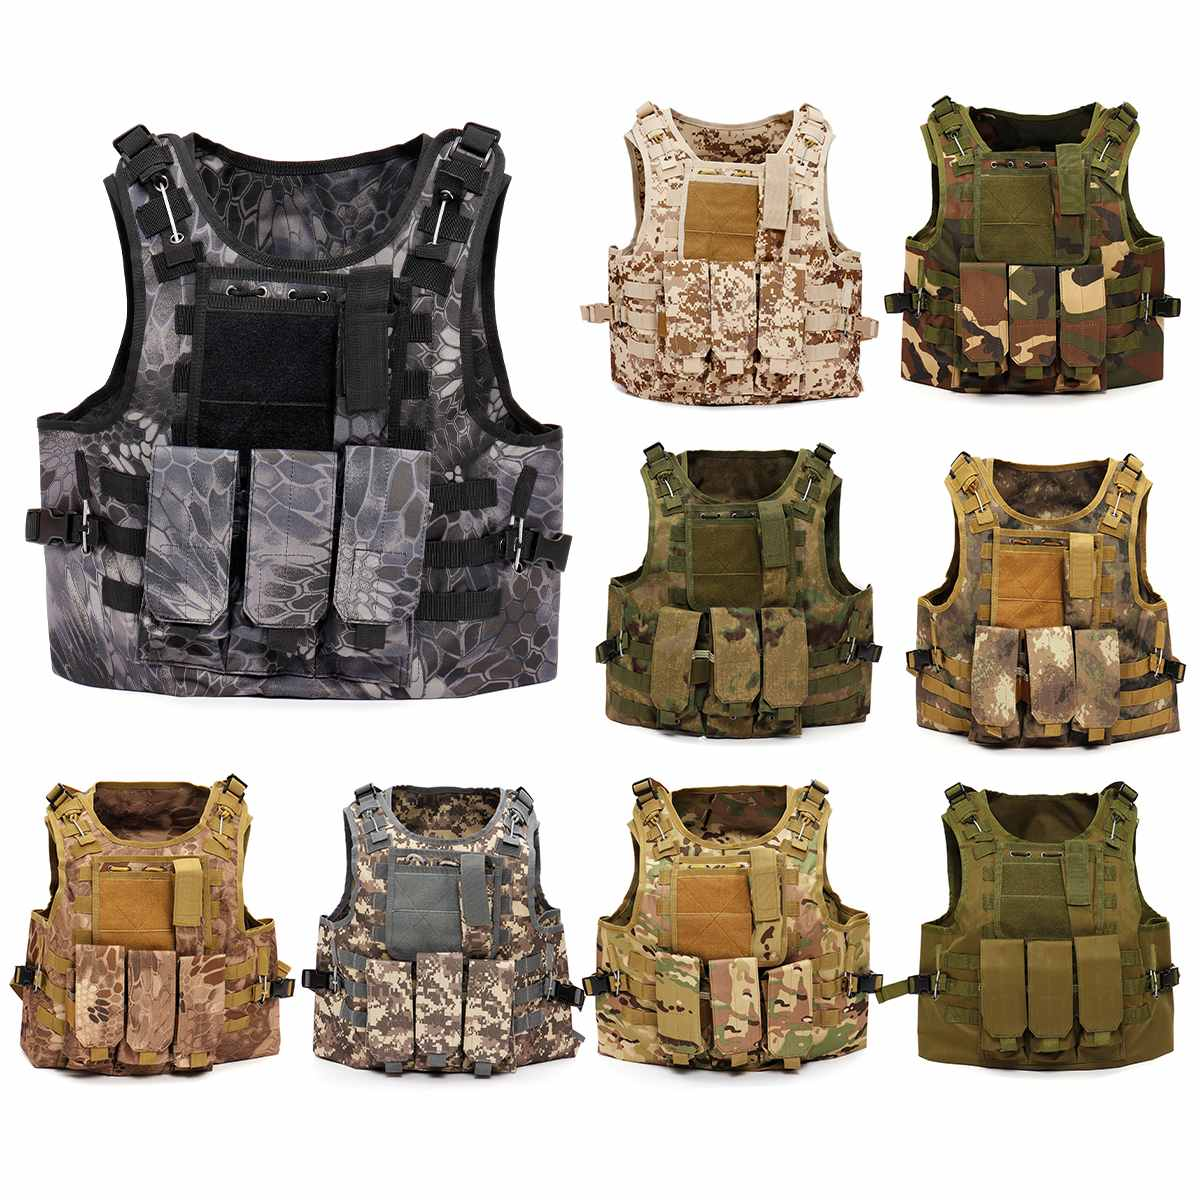 Tactical Military Vest Army Paintball Airsoft Combat Assault Adjustable Camouflage Vest Outdoor Army Training Combat Uniform